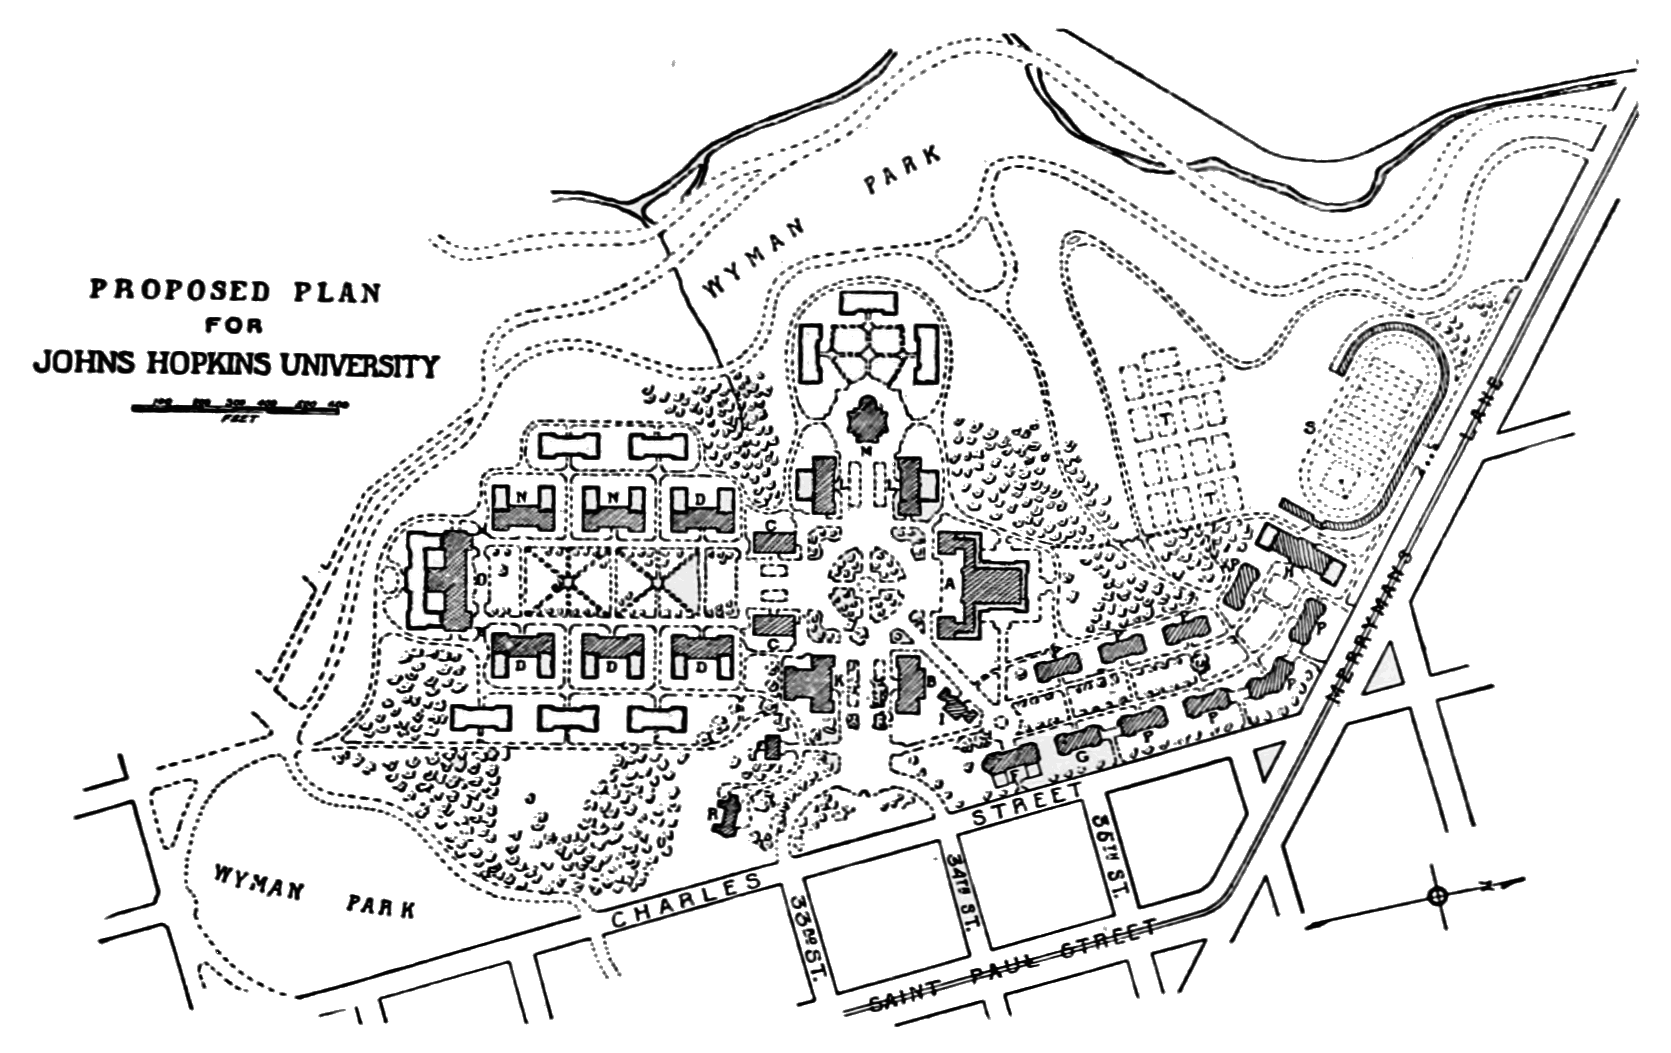 PSM V74 D107 Proposed plan for johns hopkins university.png